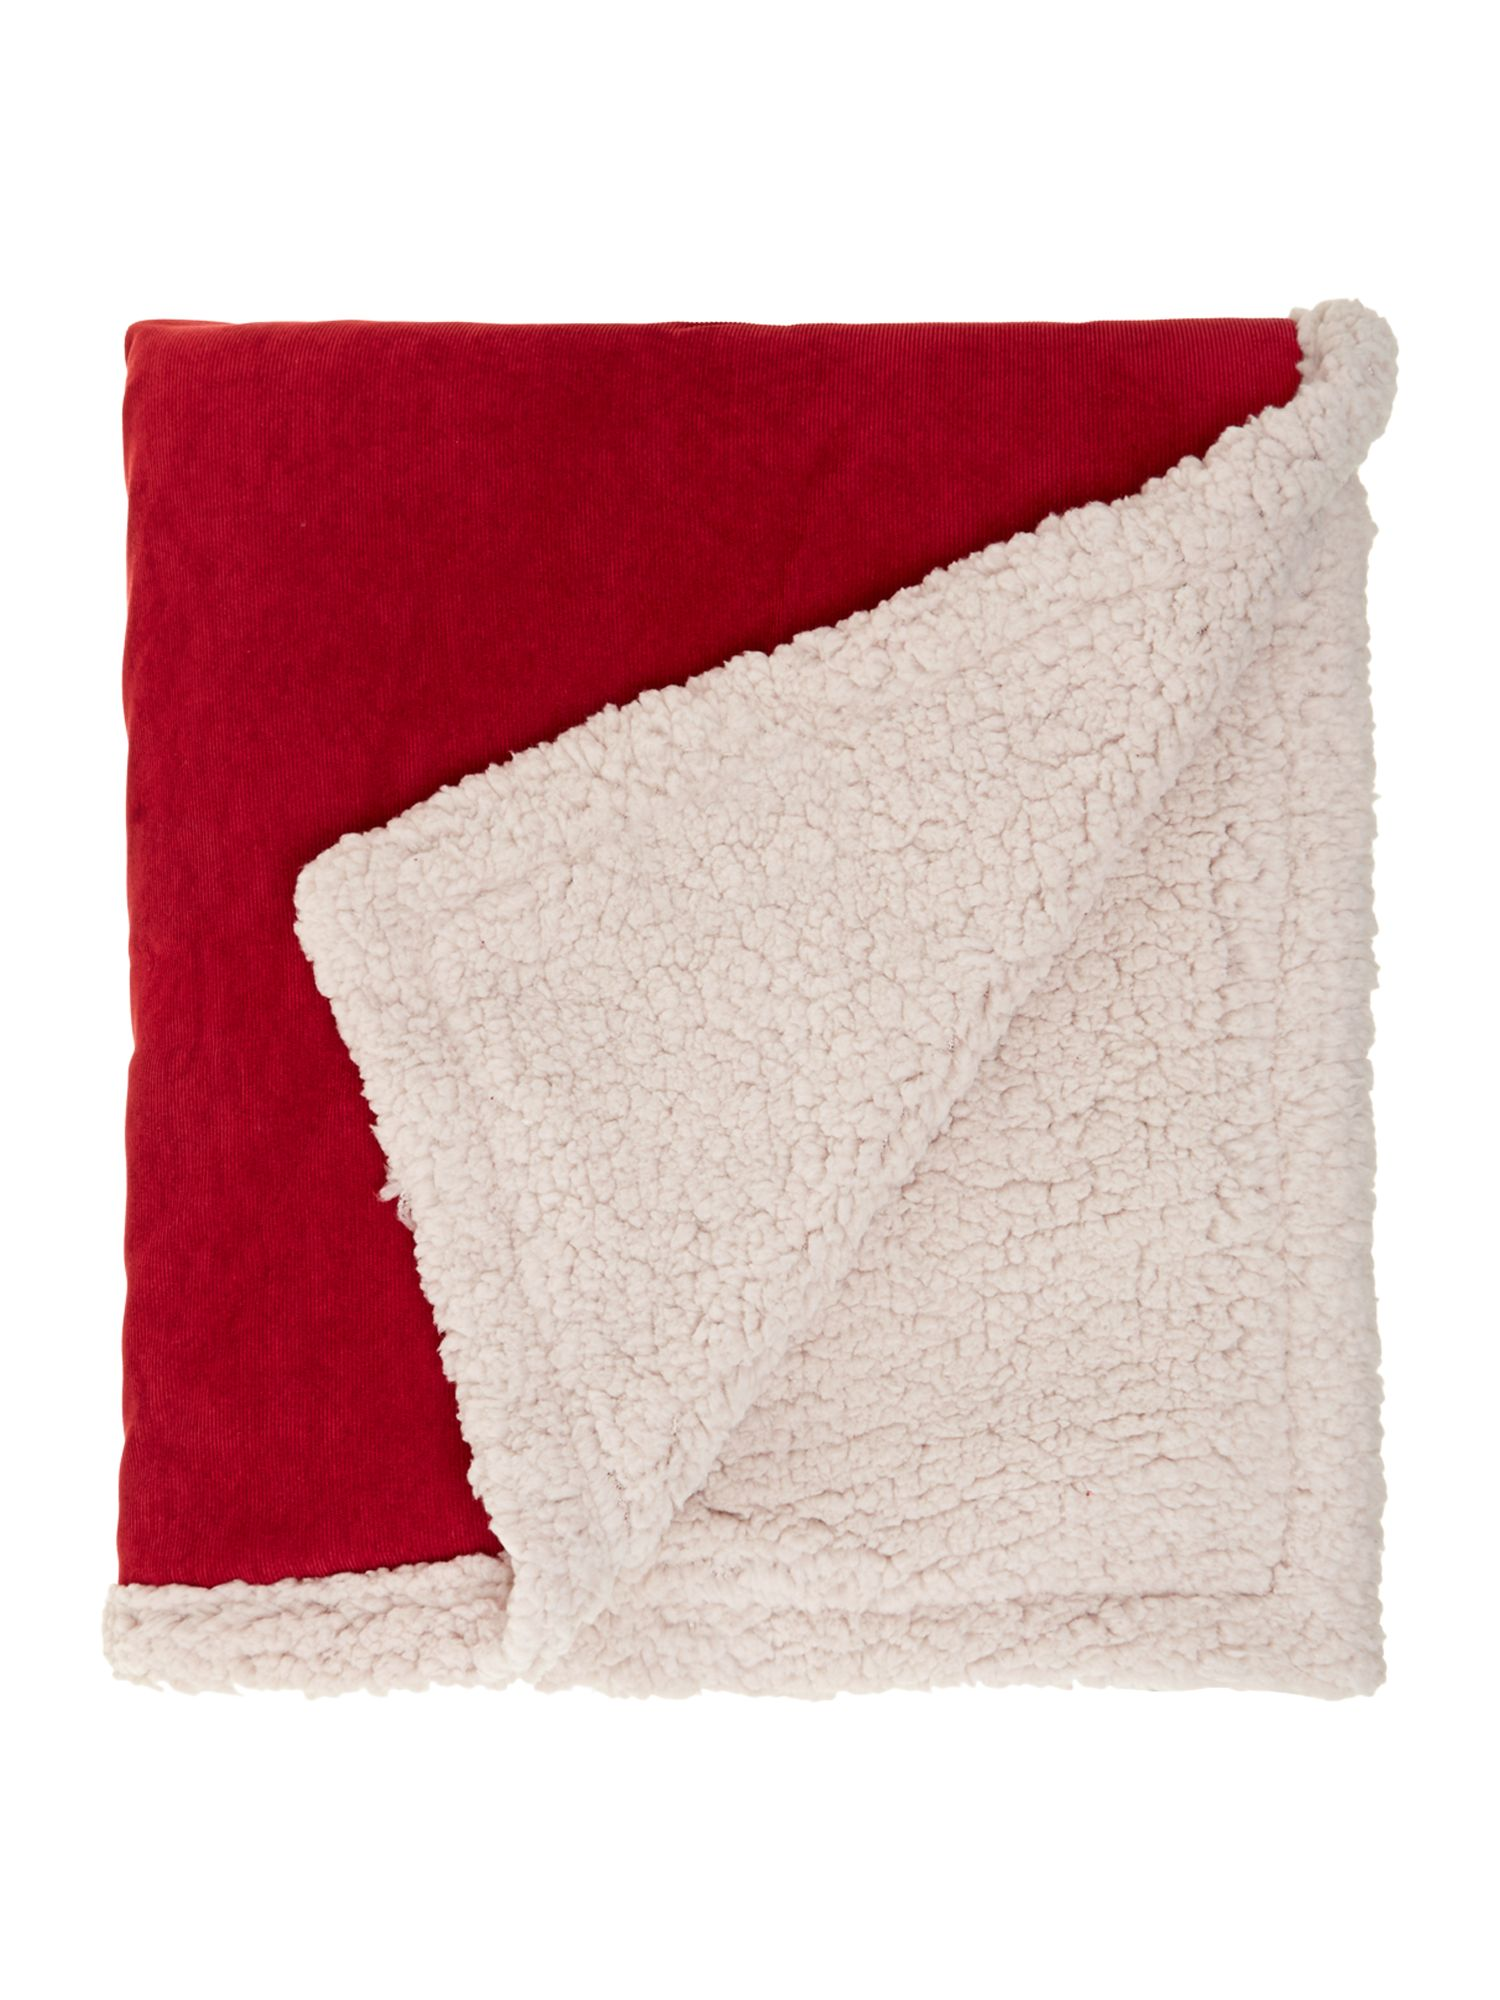 Corduroy  fleece throw red